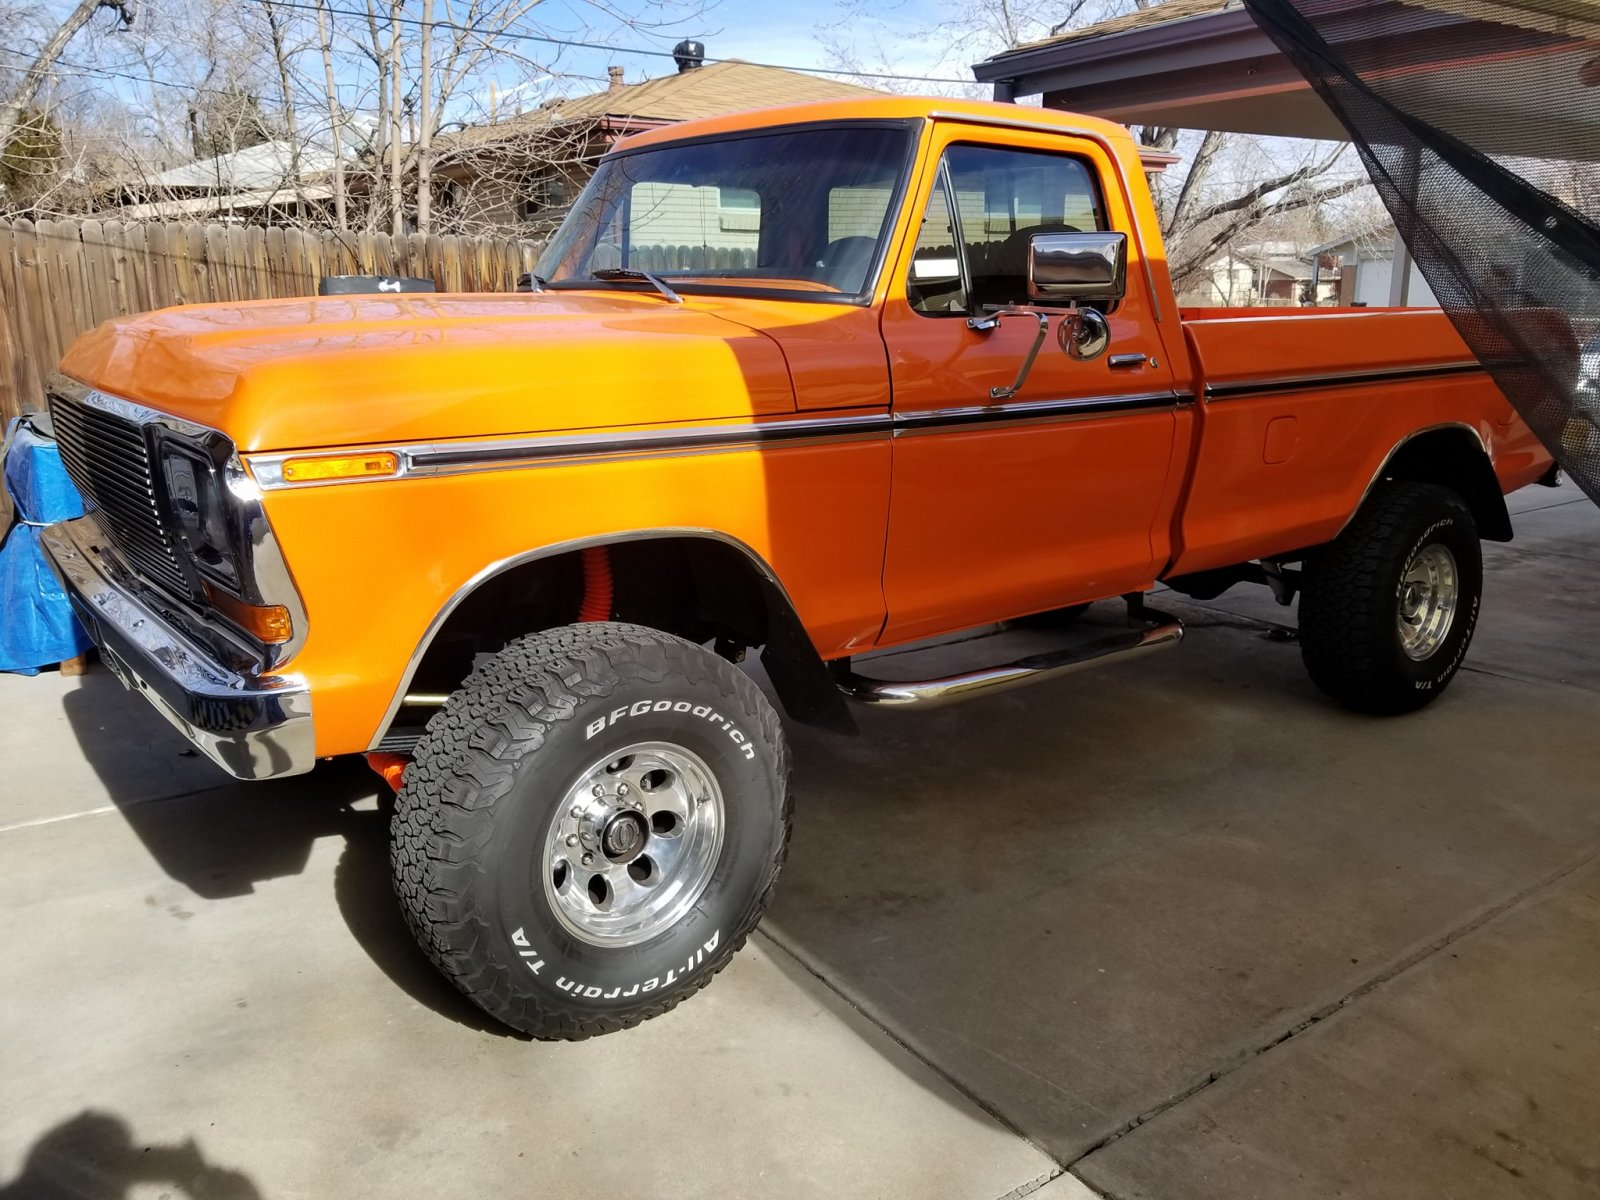 1979 Ford F250 Truck Has A 460ci With A C6 Transmission 2.jpg